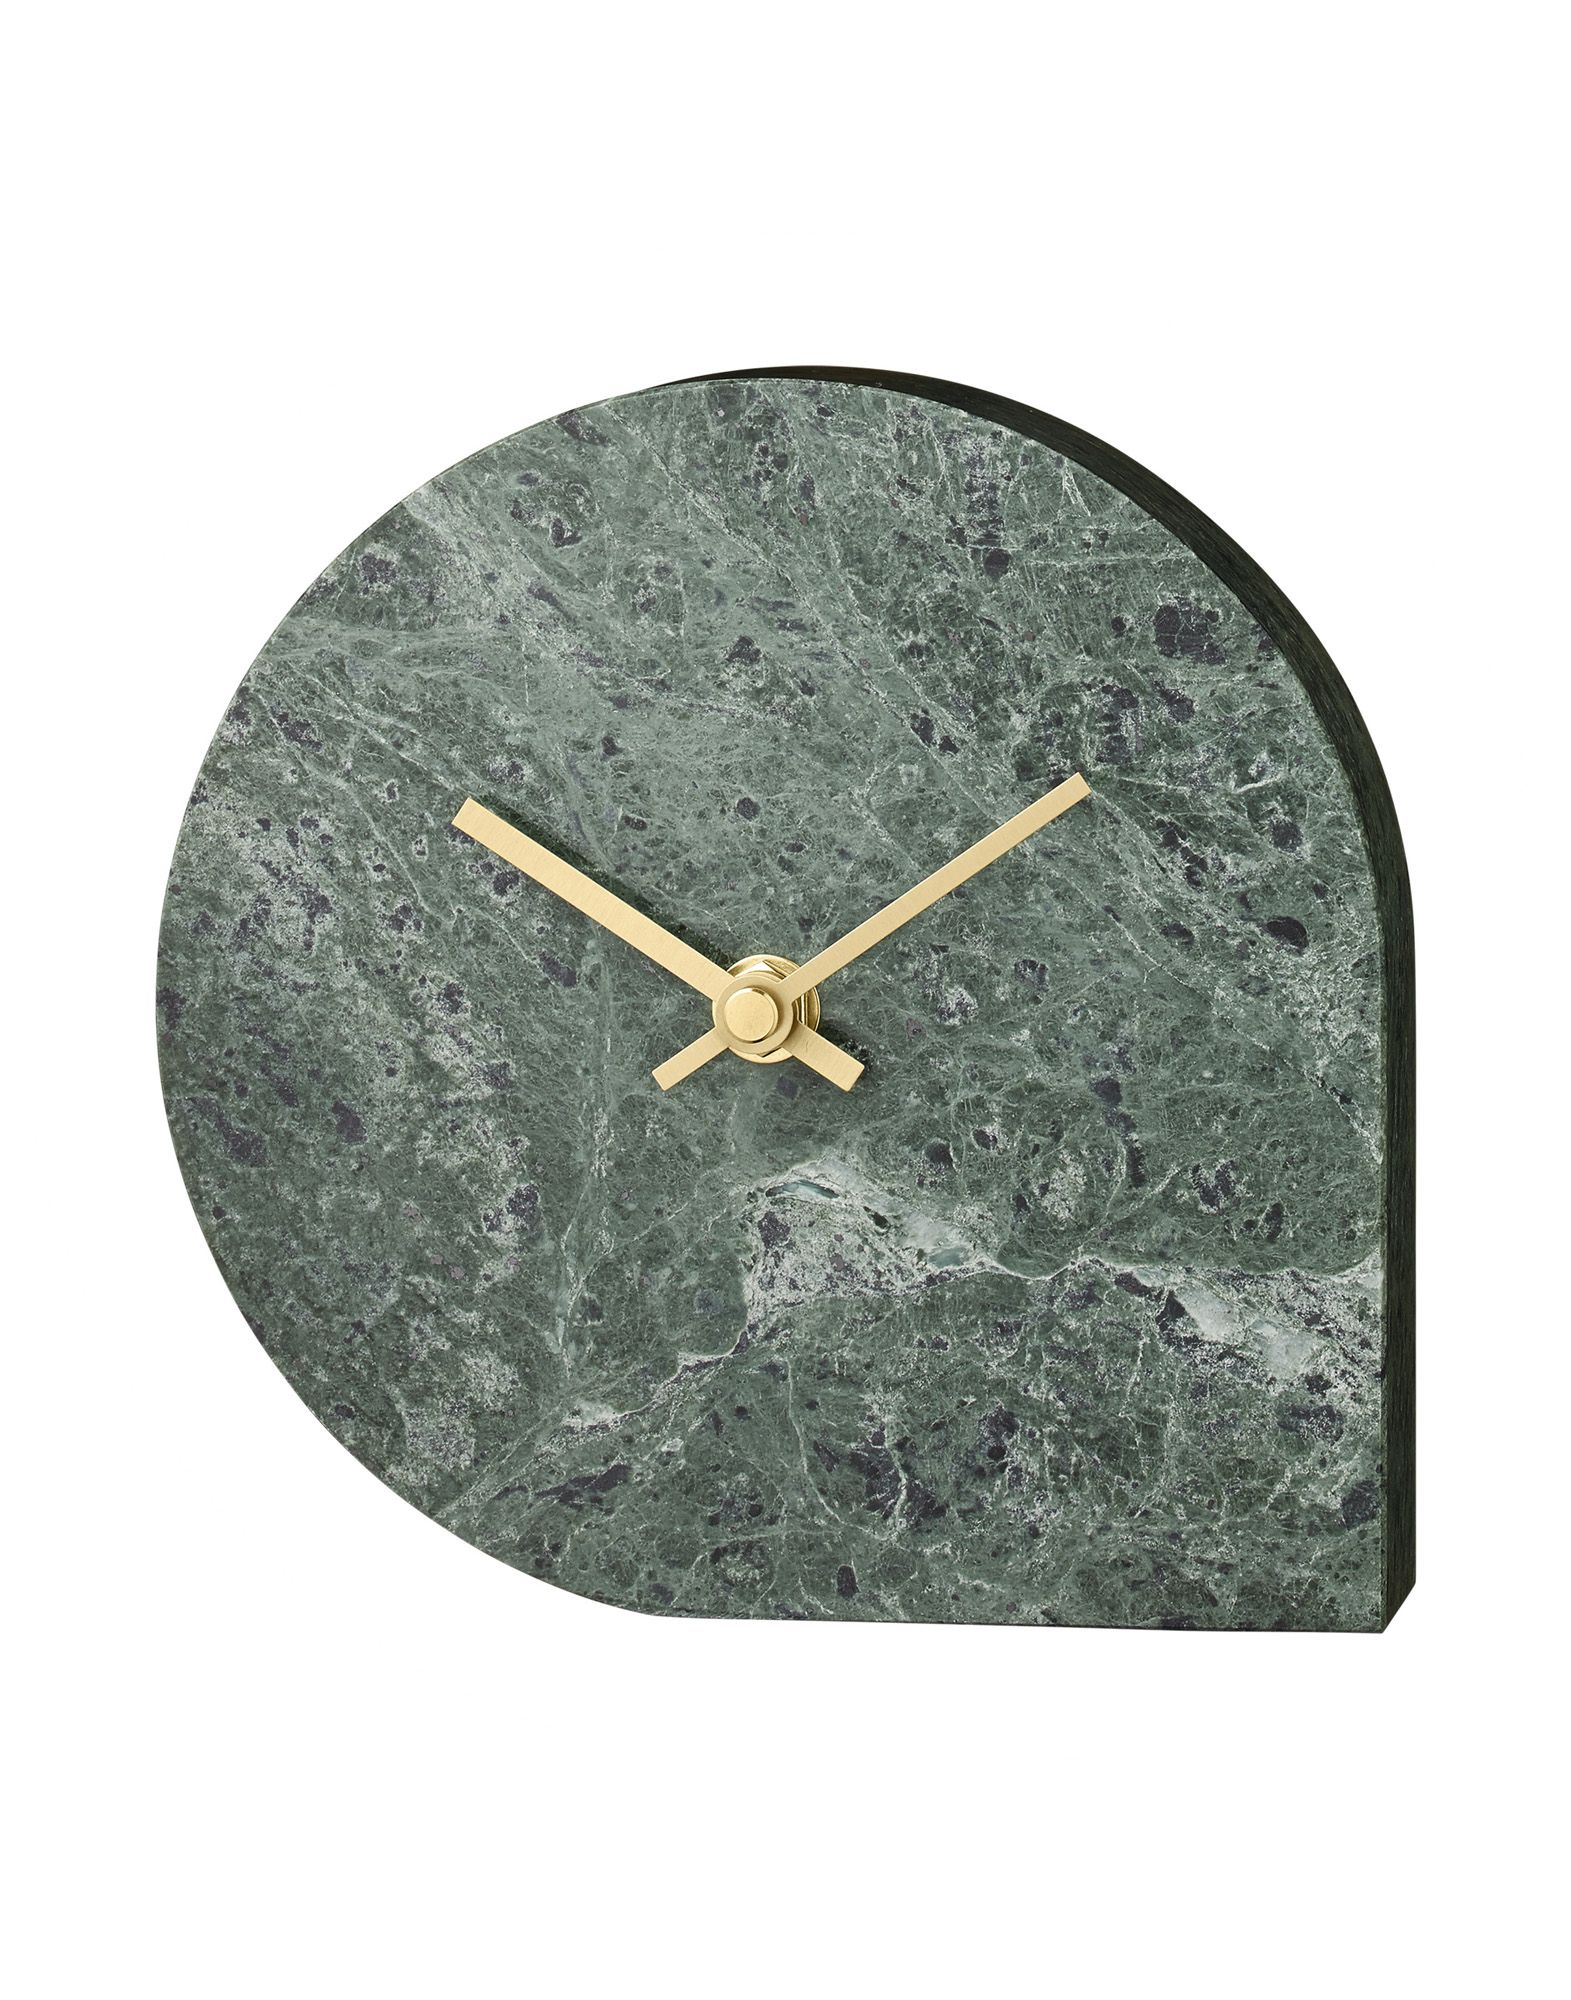 Aytm Table Clocks